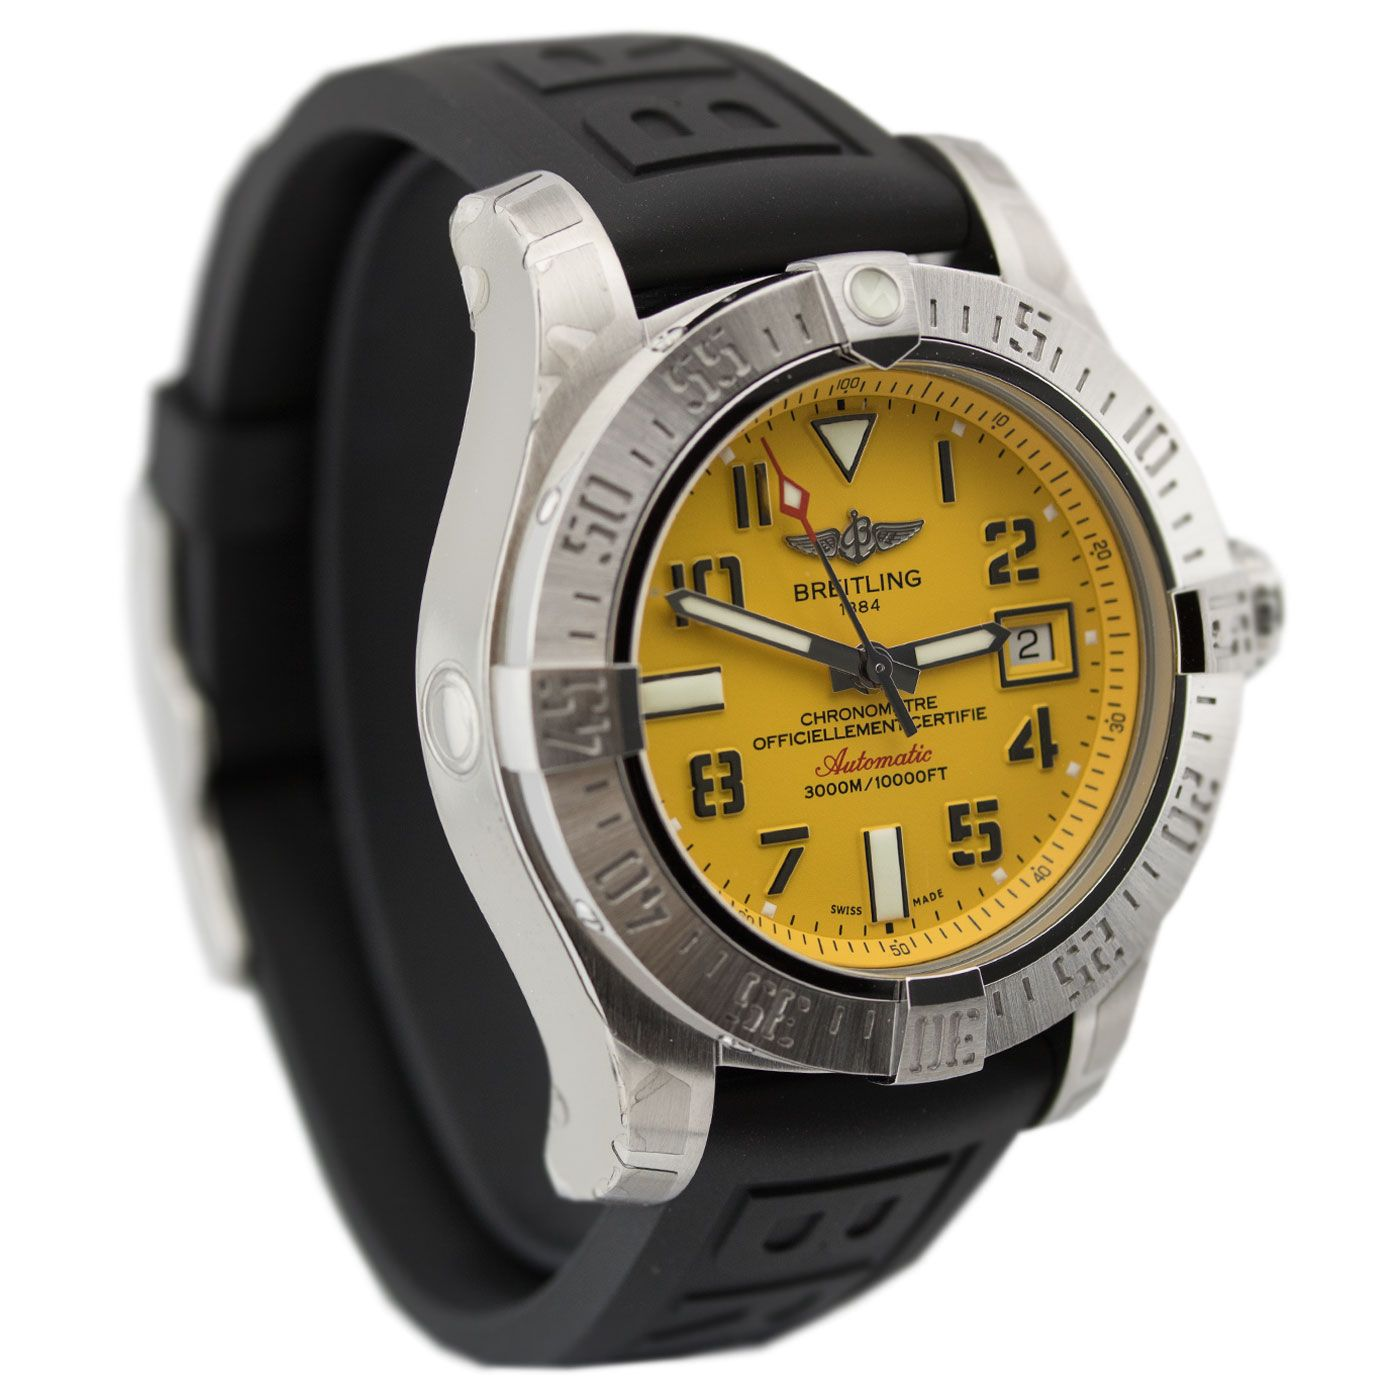 Cheap Breitling Avenger Seawolf copy watch is with high cost performance.